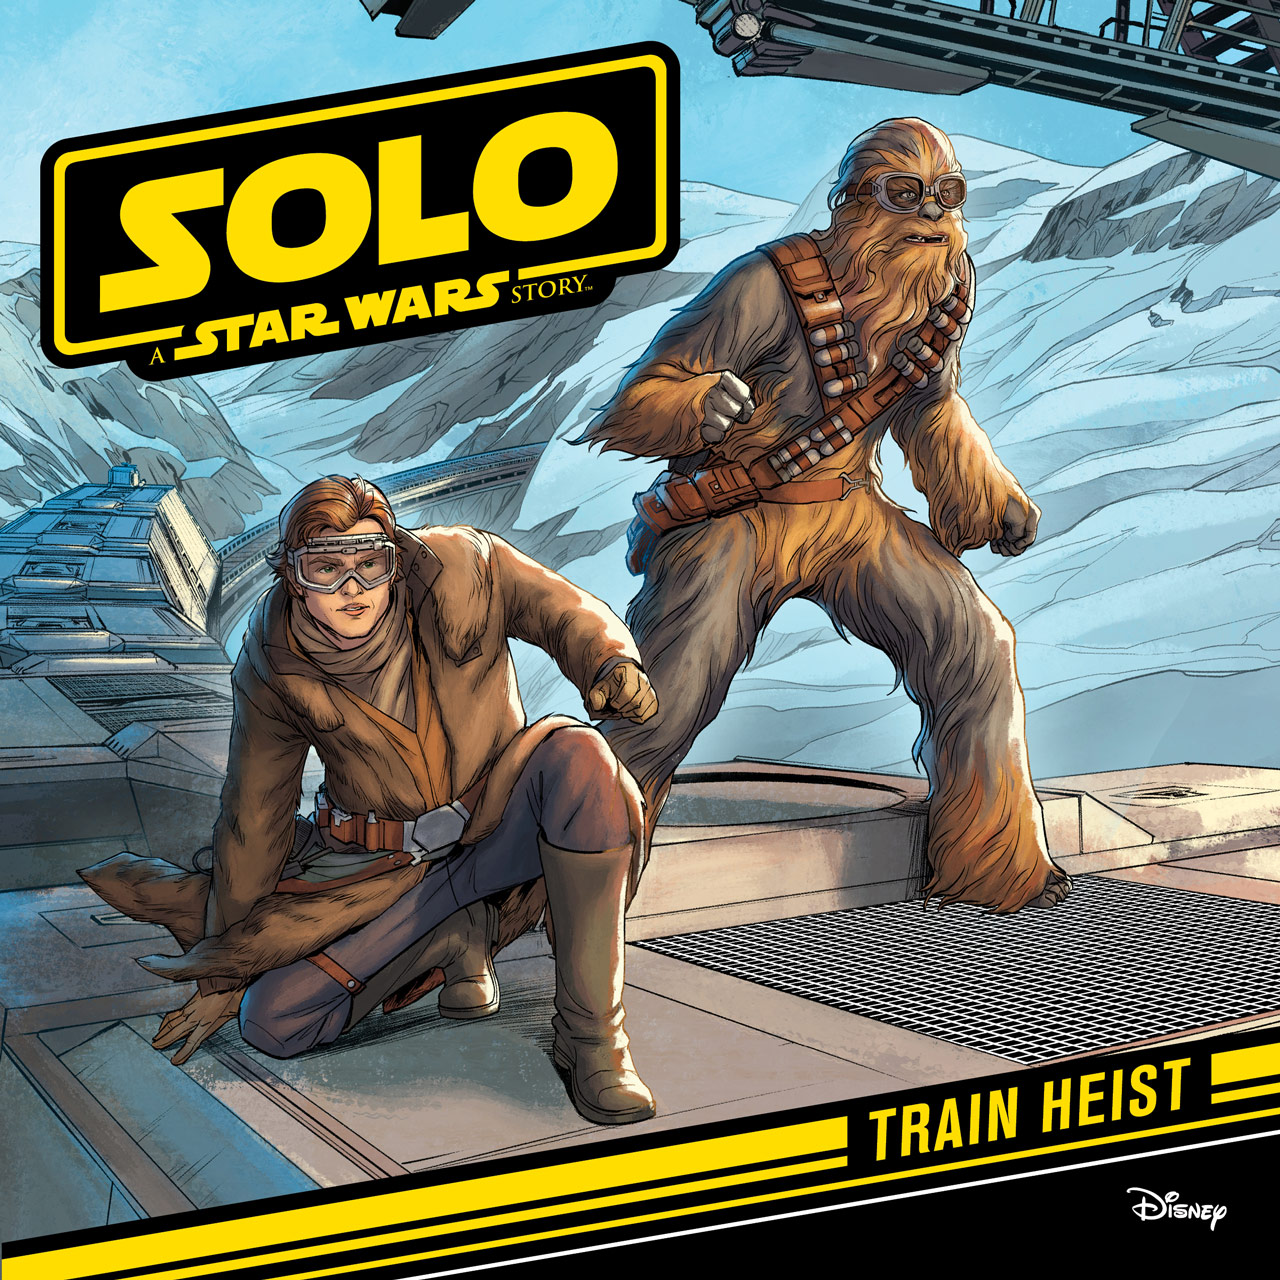 Solo: A Star Wars Story - Train Heist